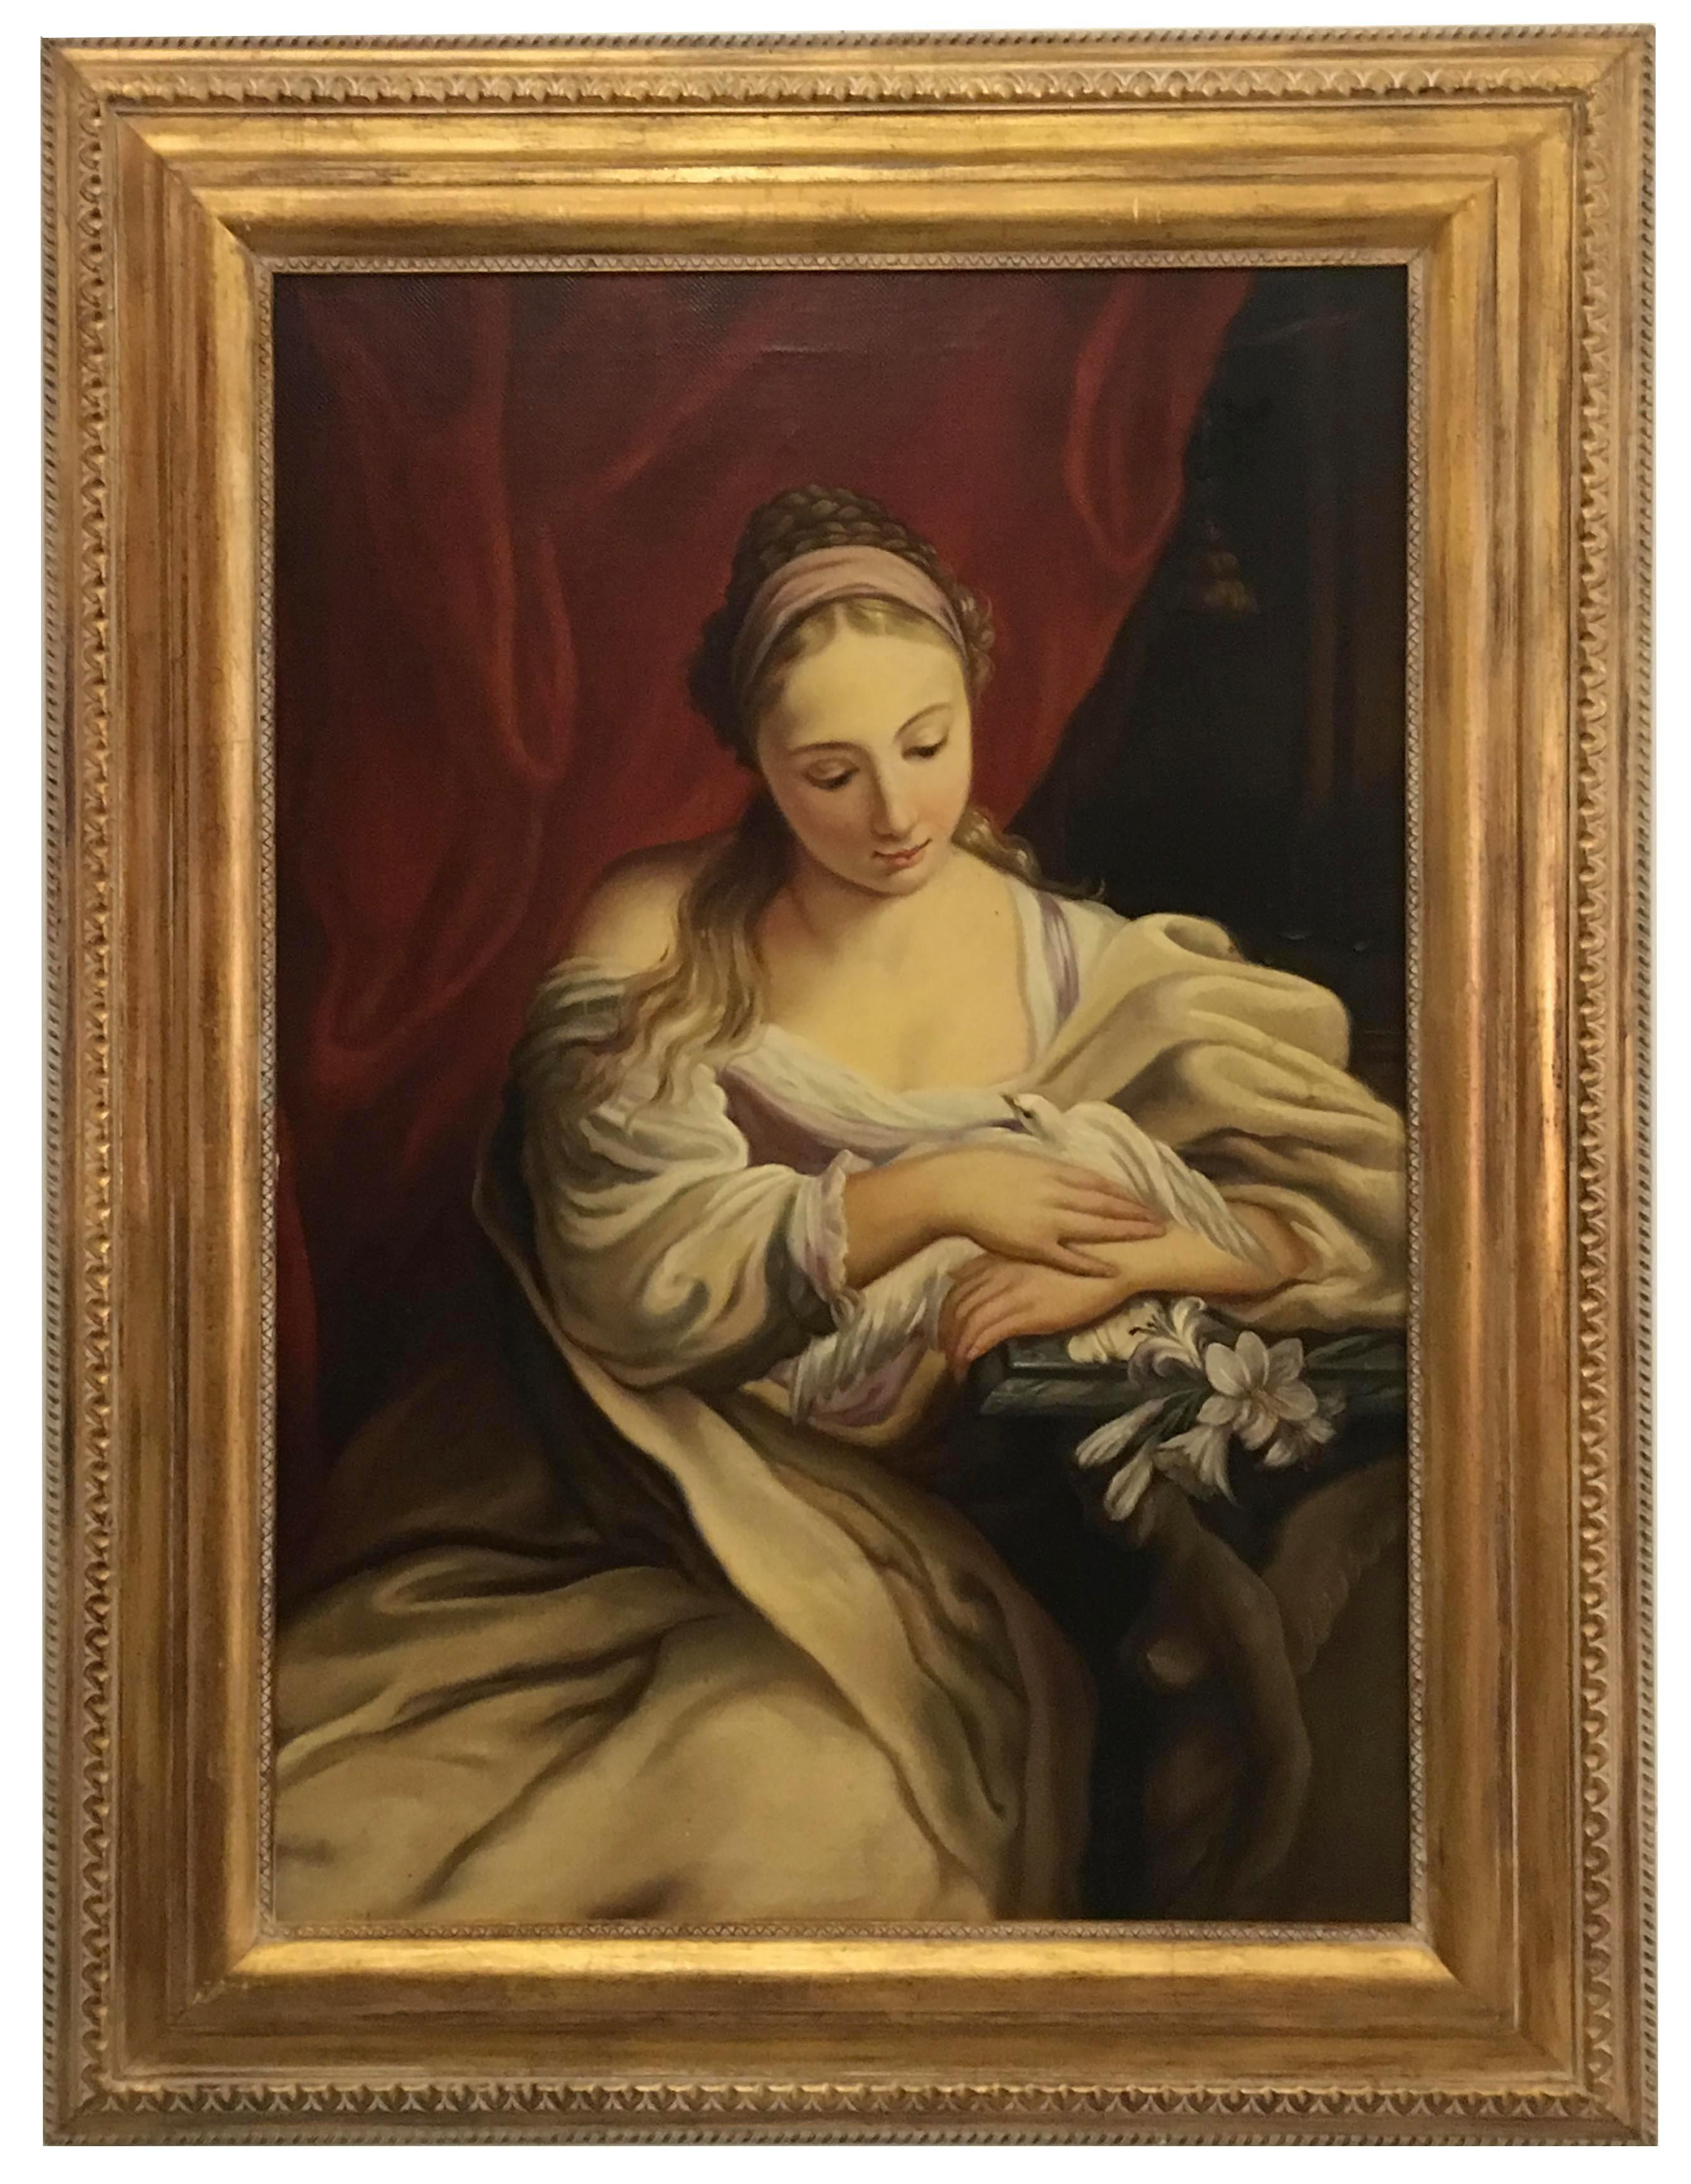 PORTRAIT OF YOUNG WOMAN - Venetian School -Italian oil on canvas painting